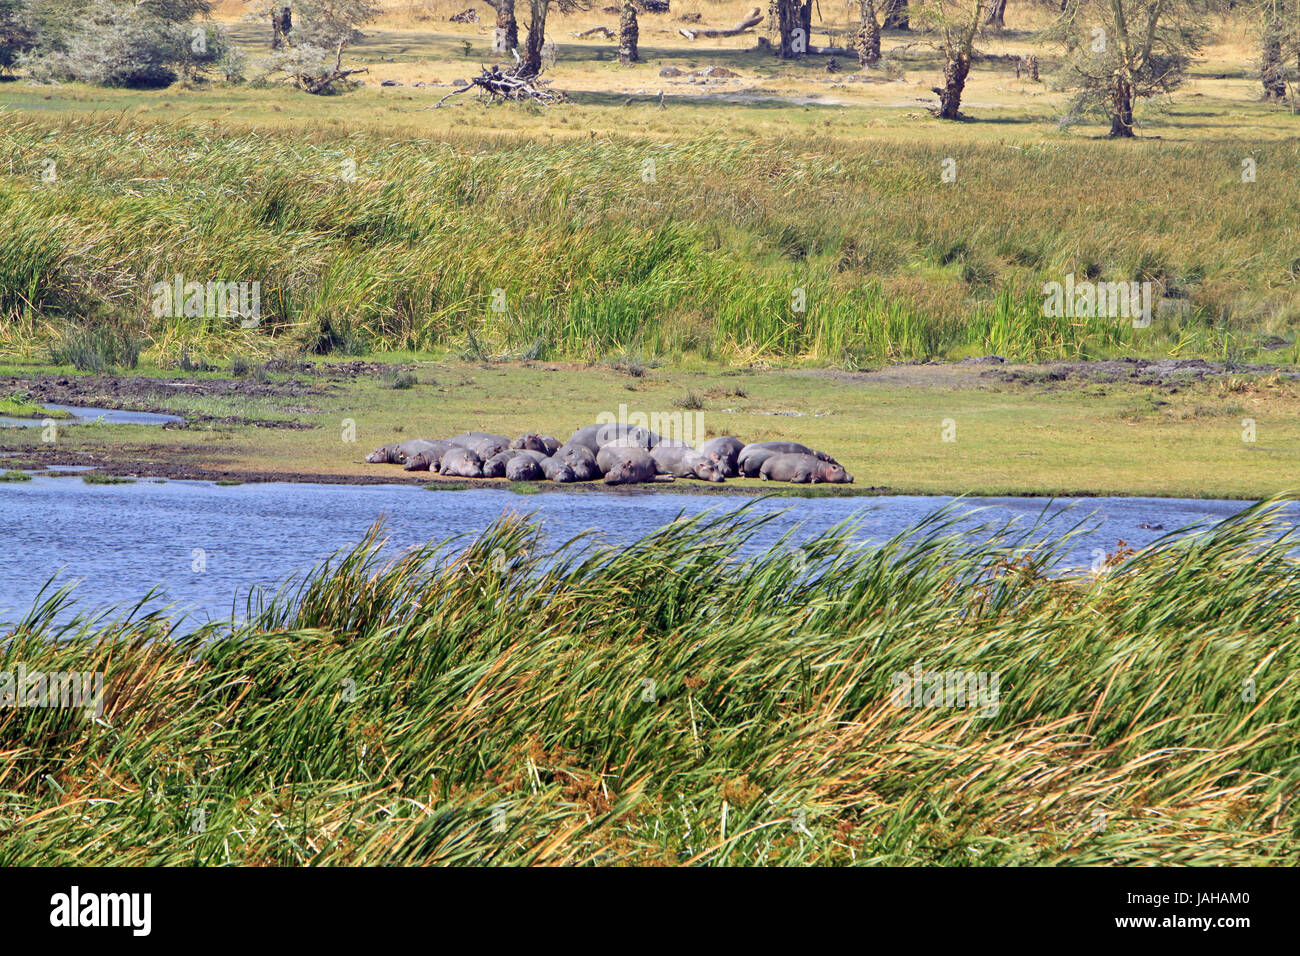 Hippos having a snooze in Taranguire National Park - Stock Image